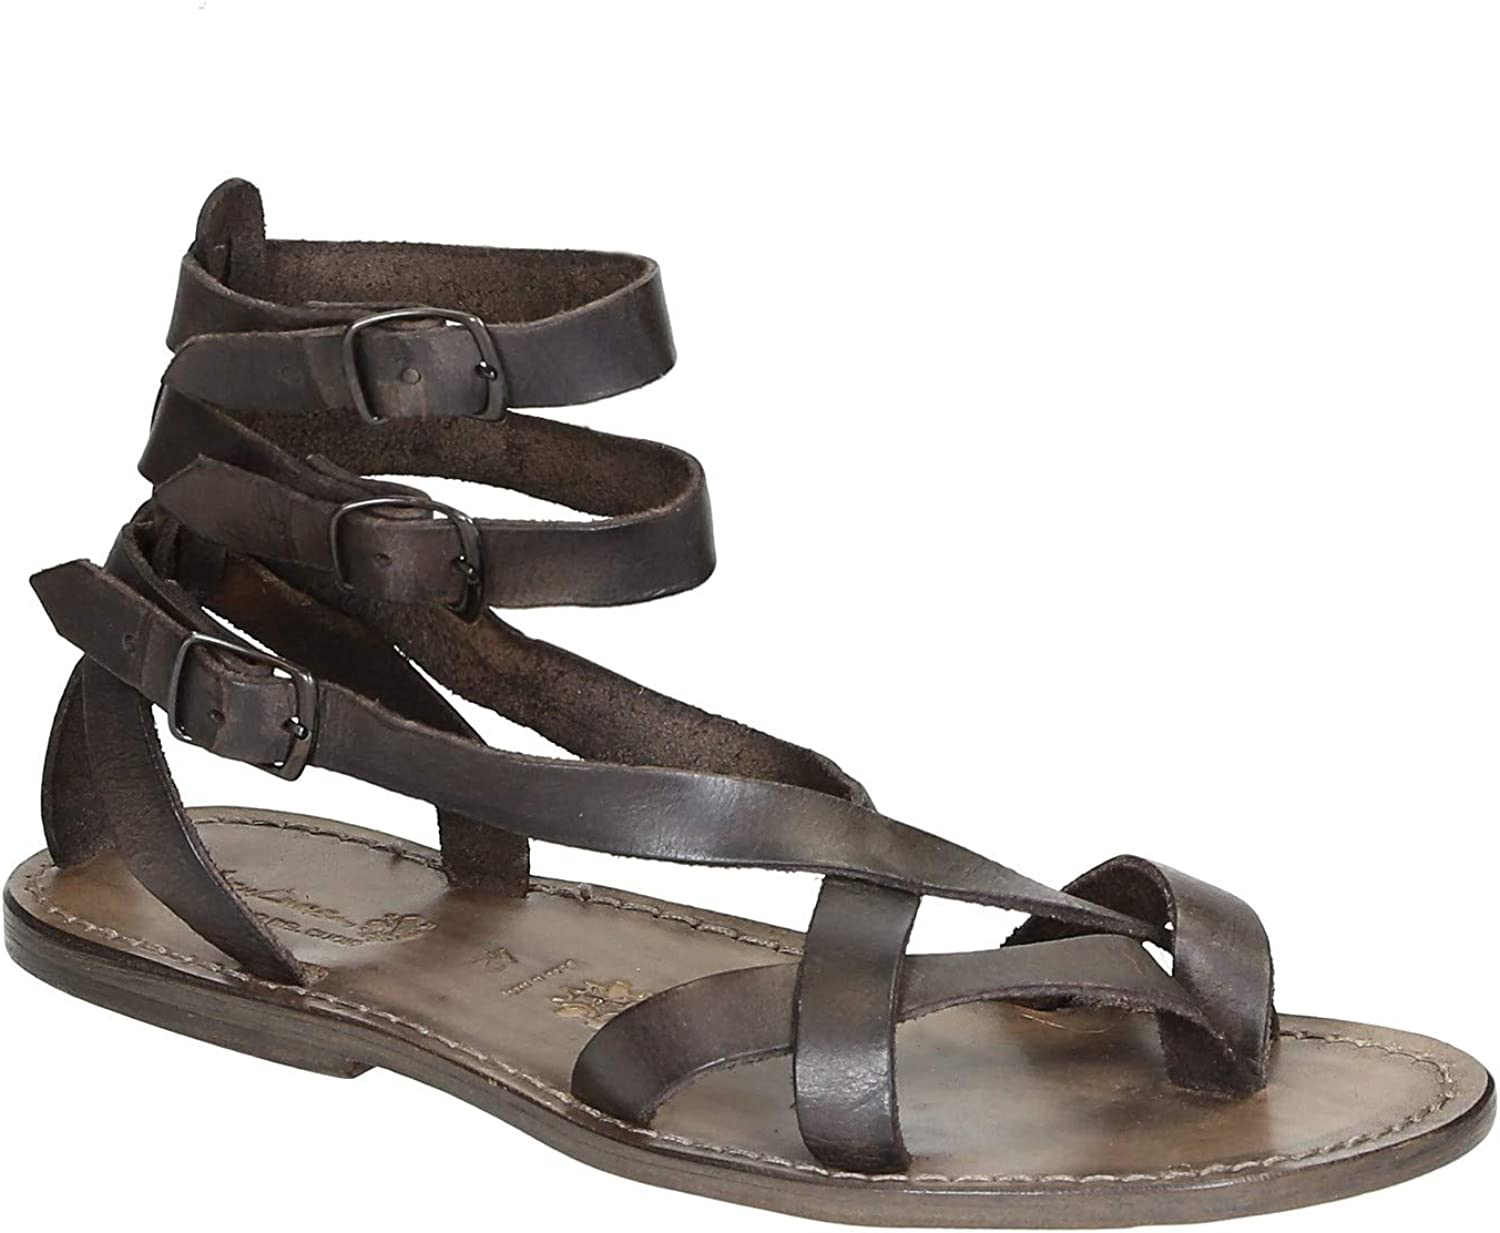 Brown Men's Year-end gift Gladiator Sandals Rapid rise Italy in Handmade